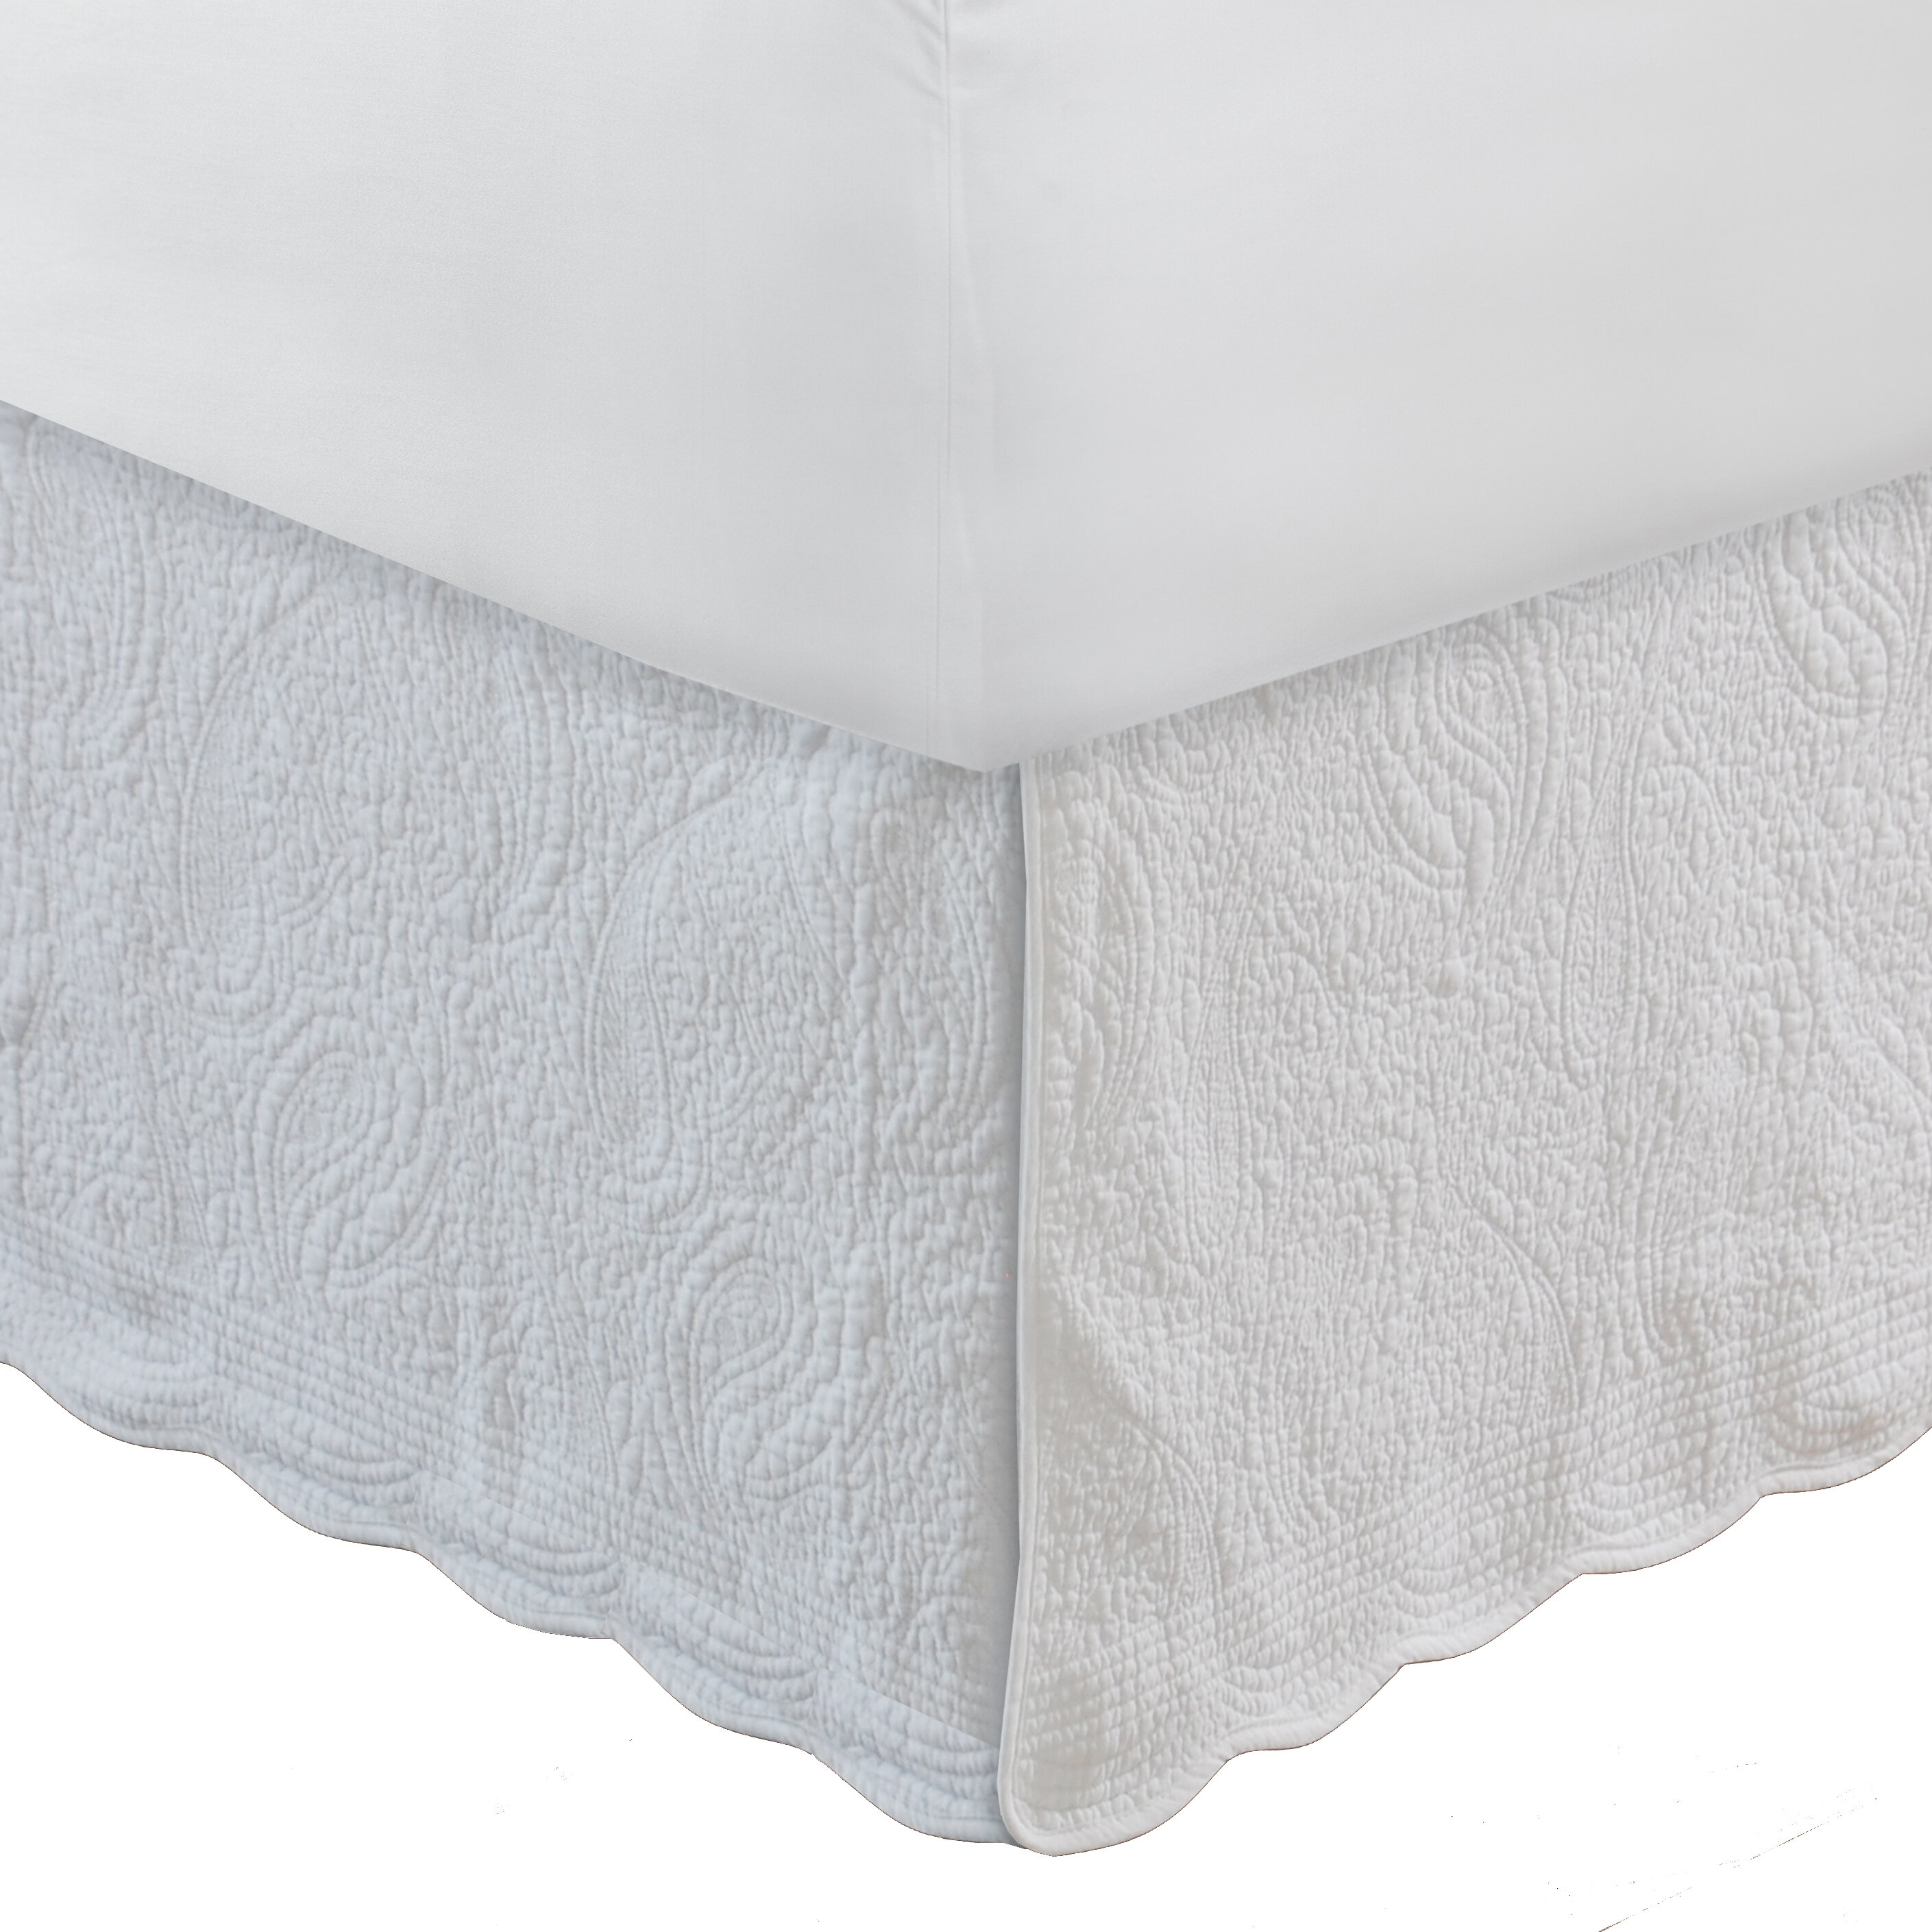 PREMIUM QUALITY Dust Ruffle Split Corner Bed Skirts White Cotton with Easy Fit